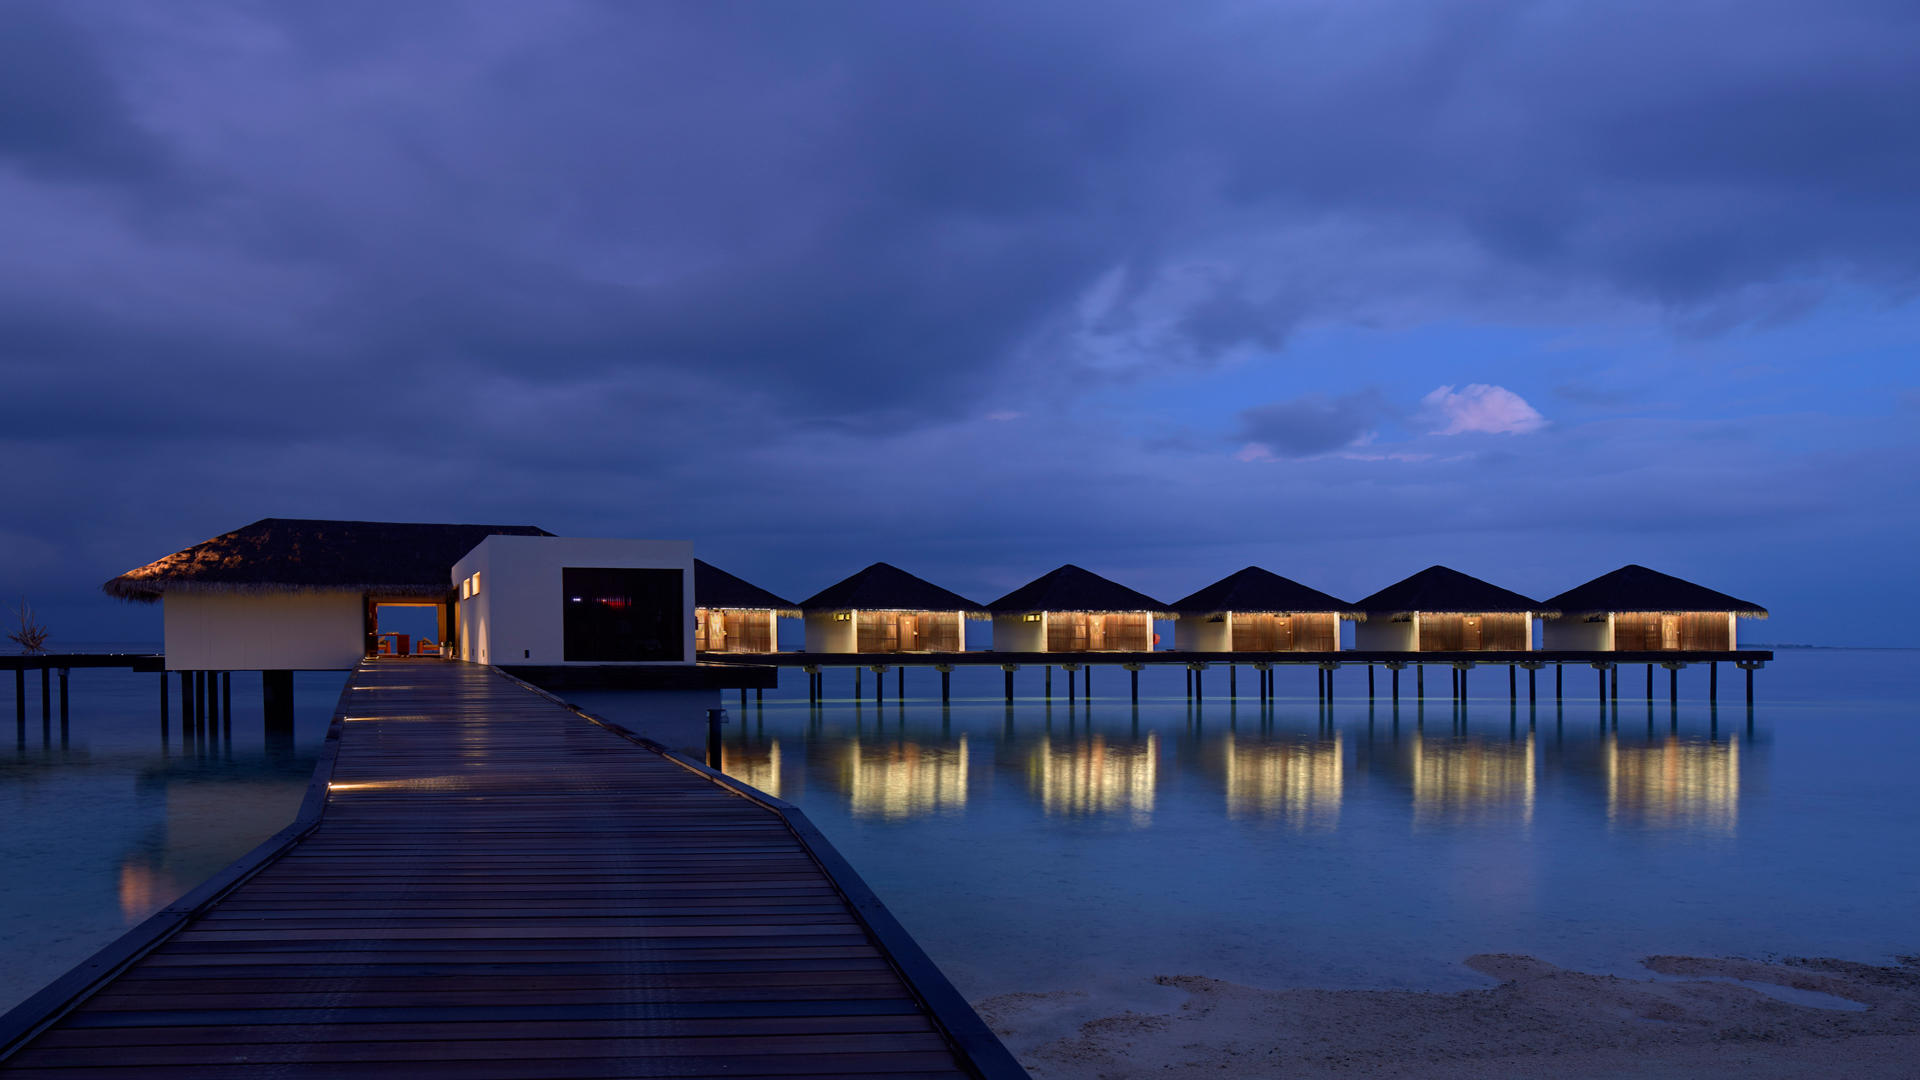 Cenizaro_ResidencesMaldives_The-Spa-by-Clarins-Exterior